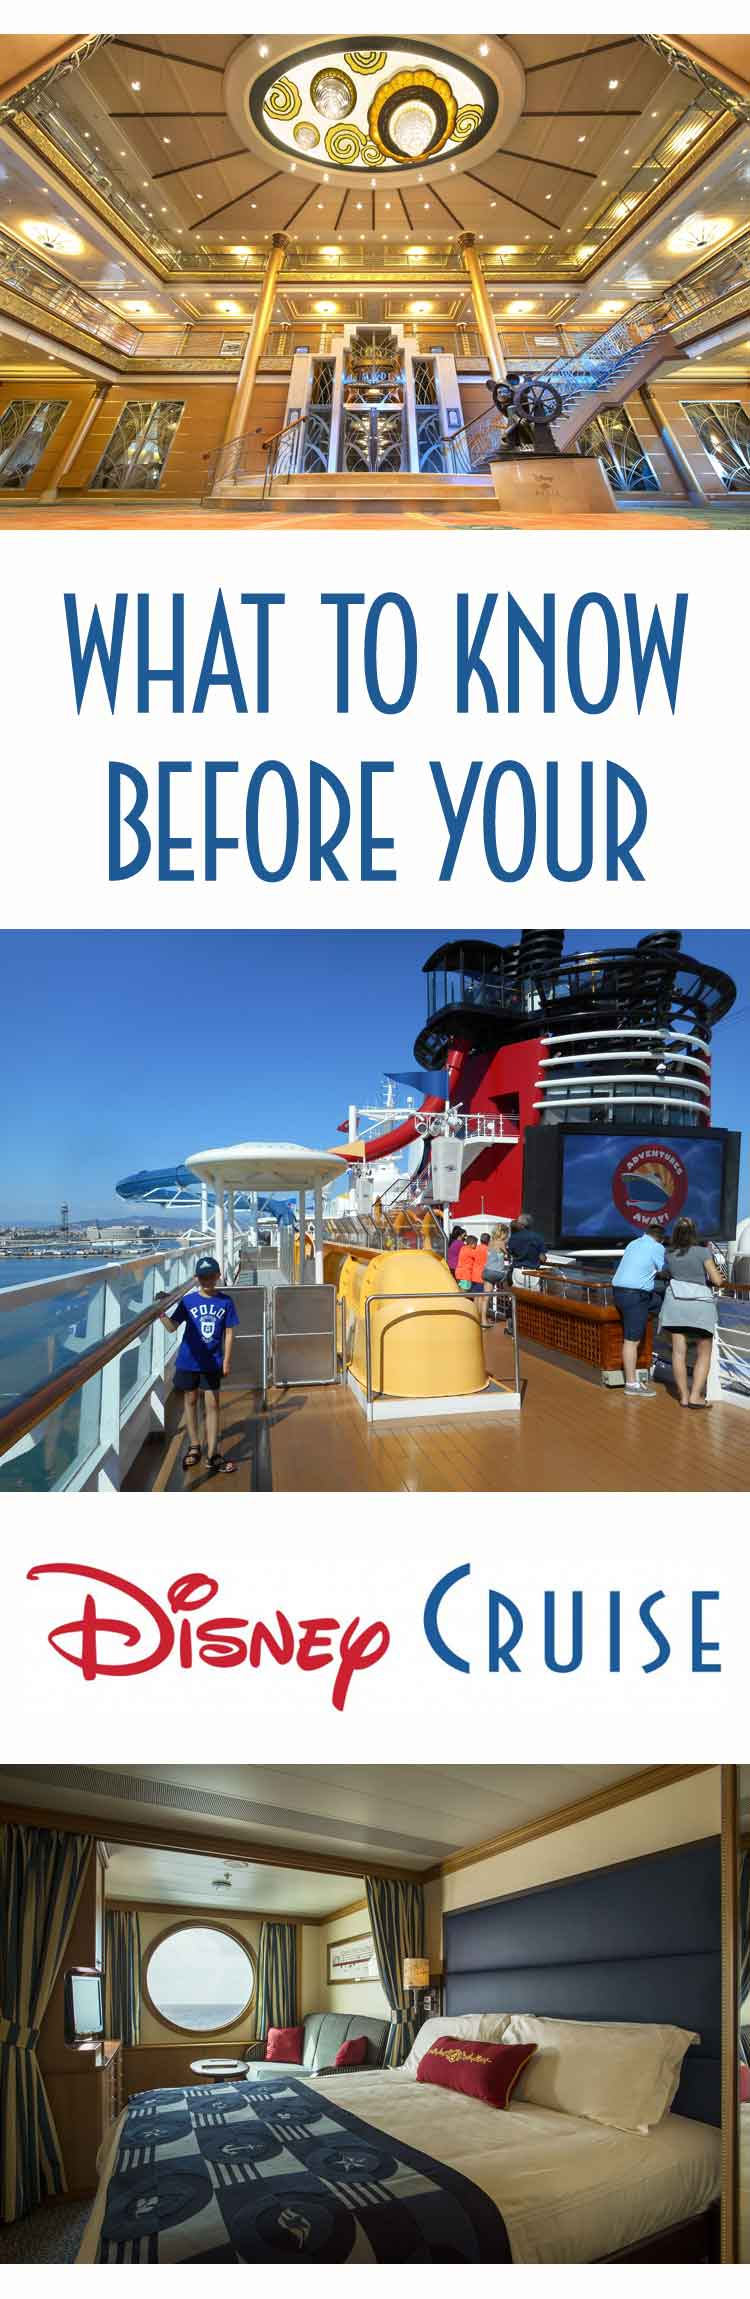 what-to-know-before-your-Disney-Cruise